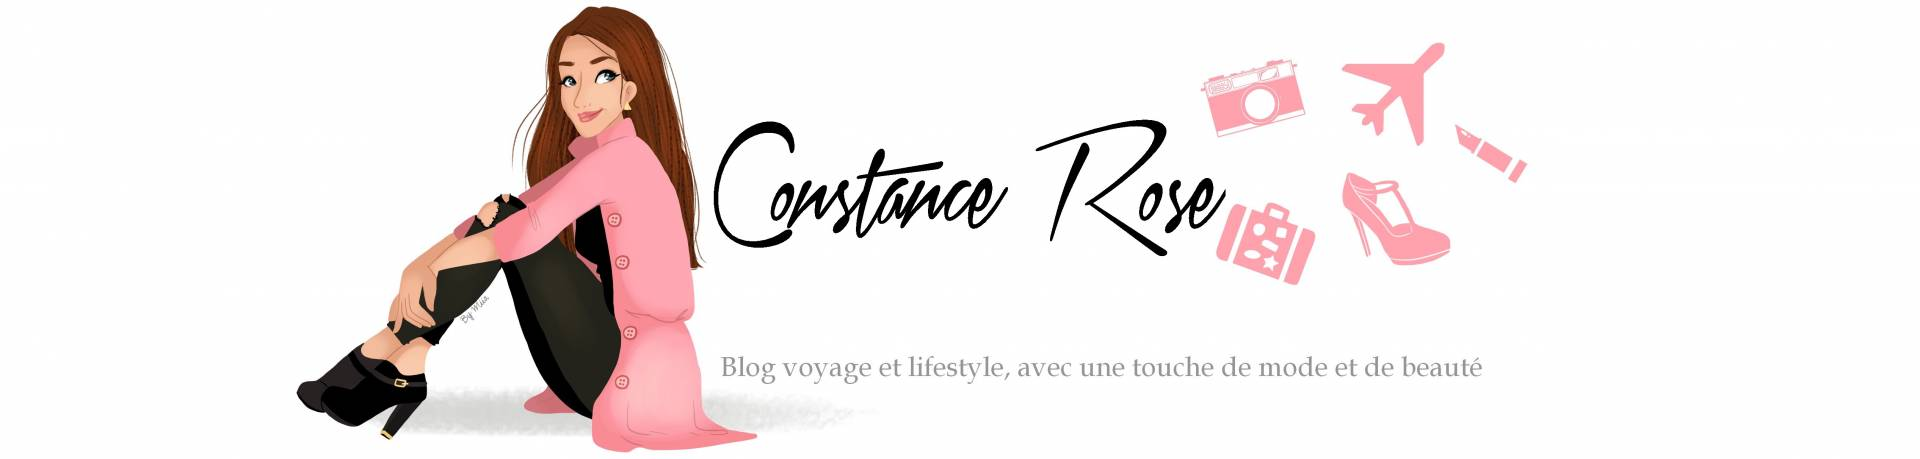 Constance Rose